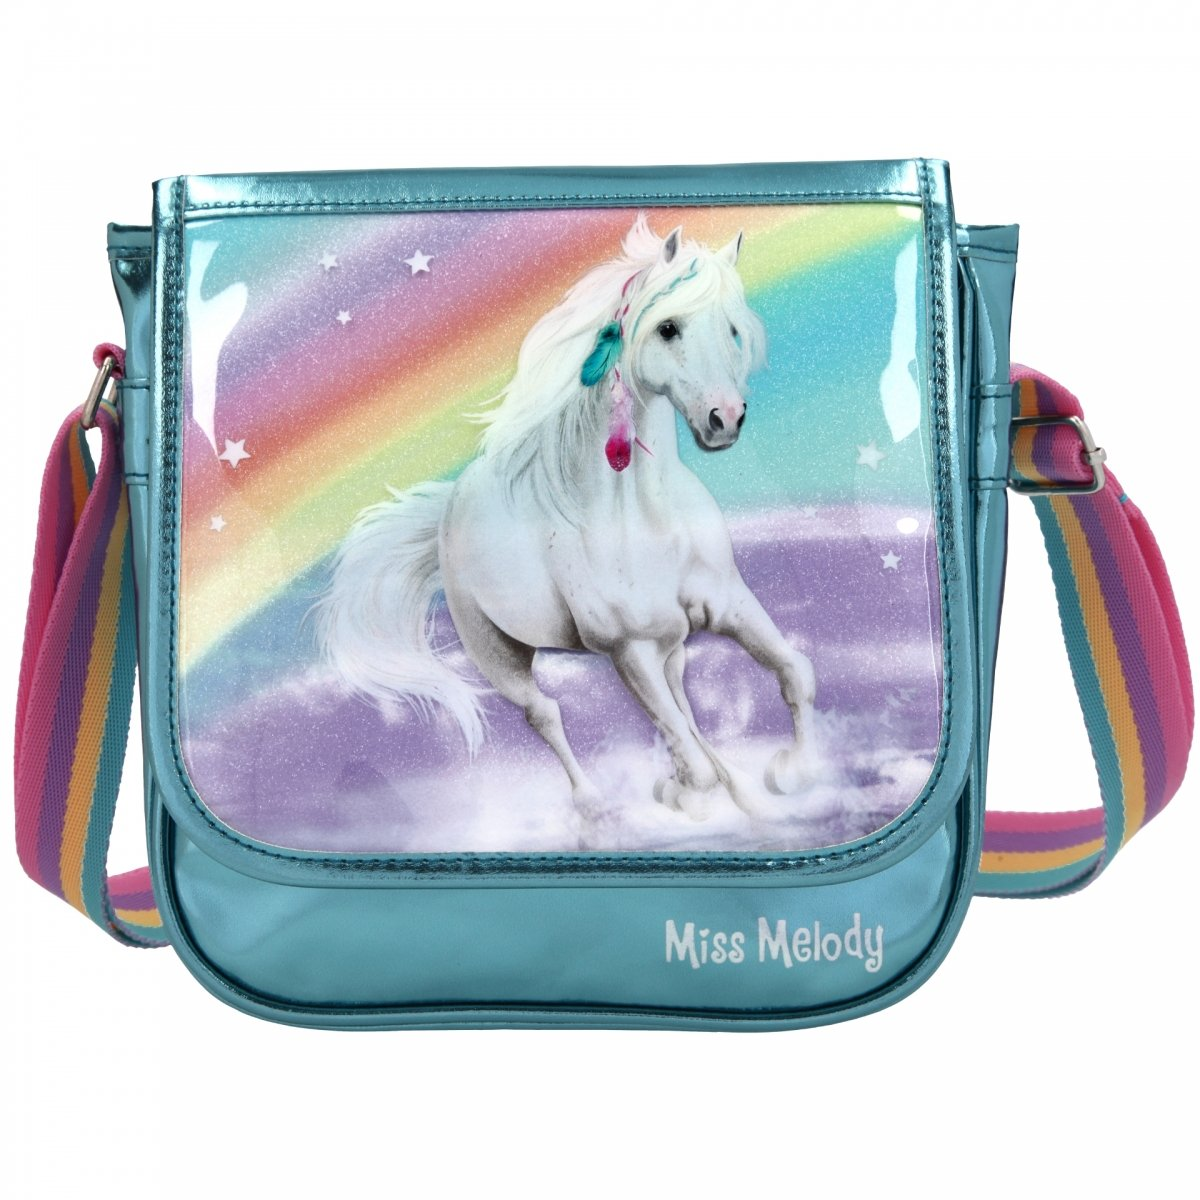 Miss Melody - Small Shoulder Bag - Rainbow (411057)